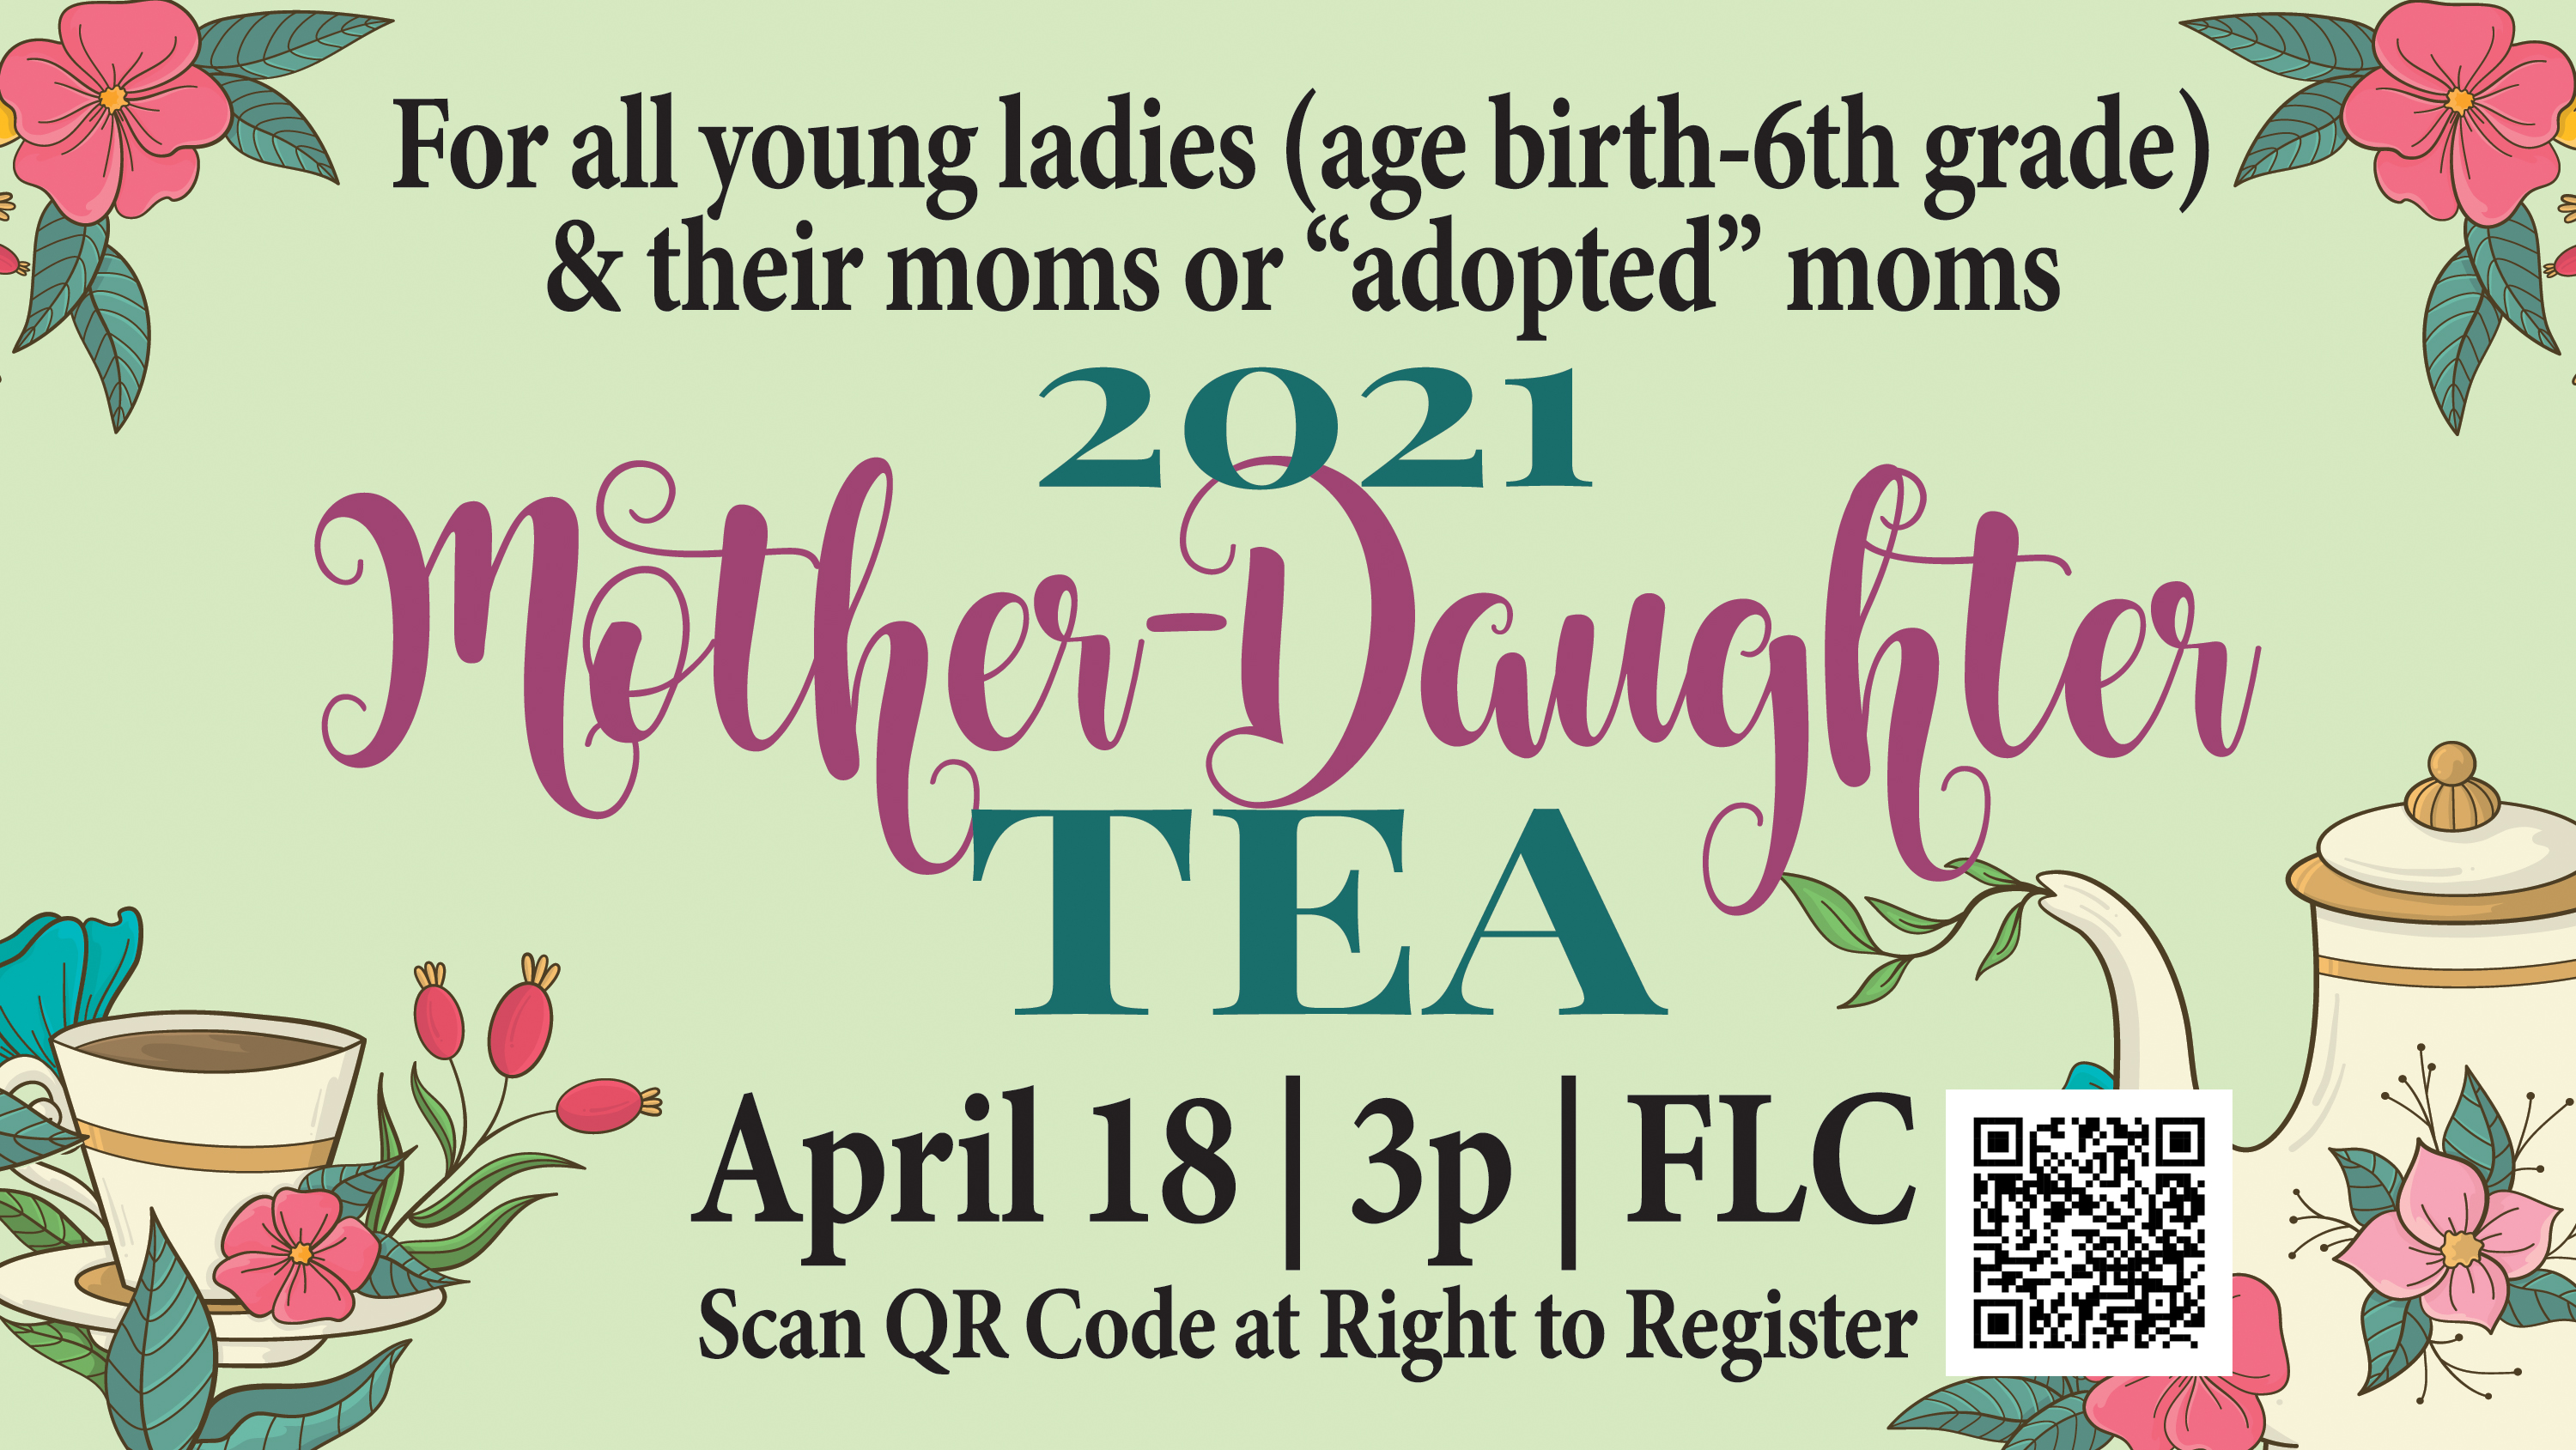 3  Mother-Daughter Tea ad 2021 image